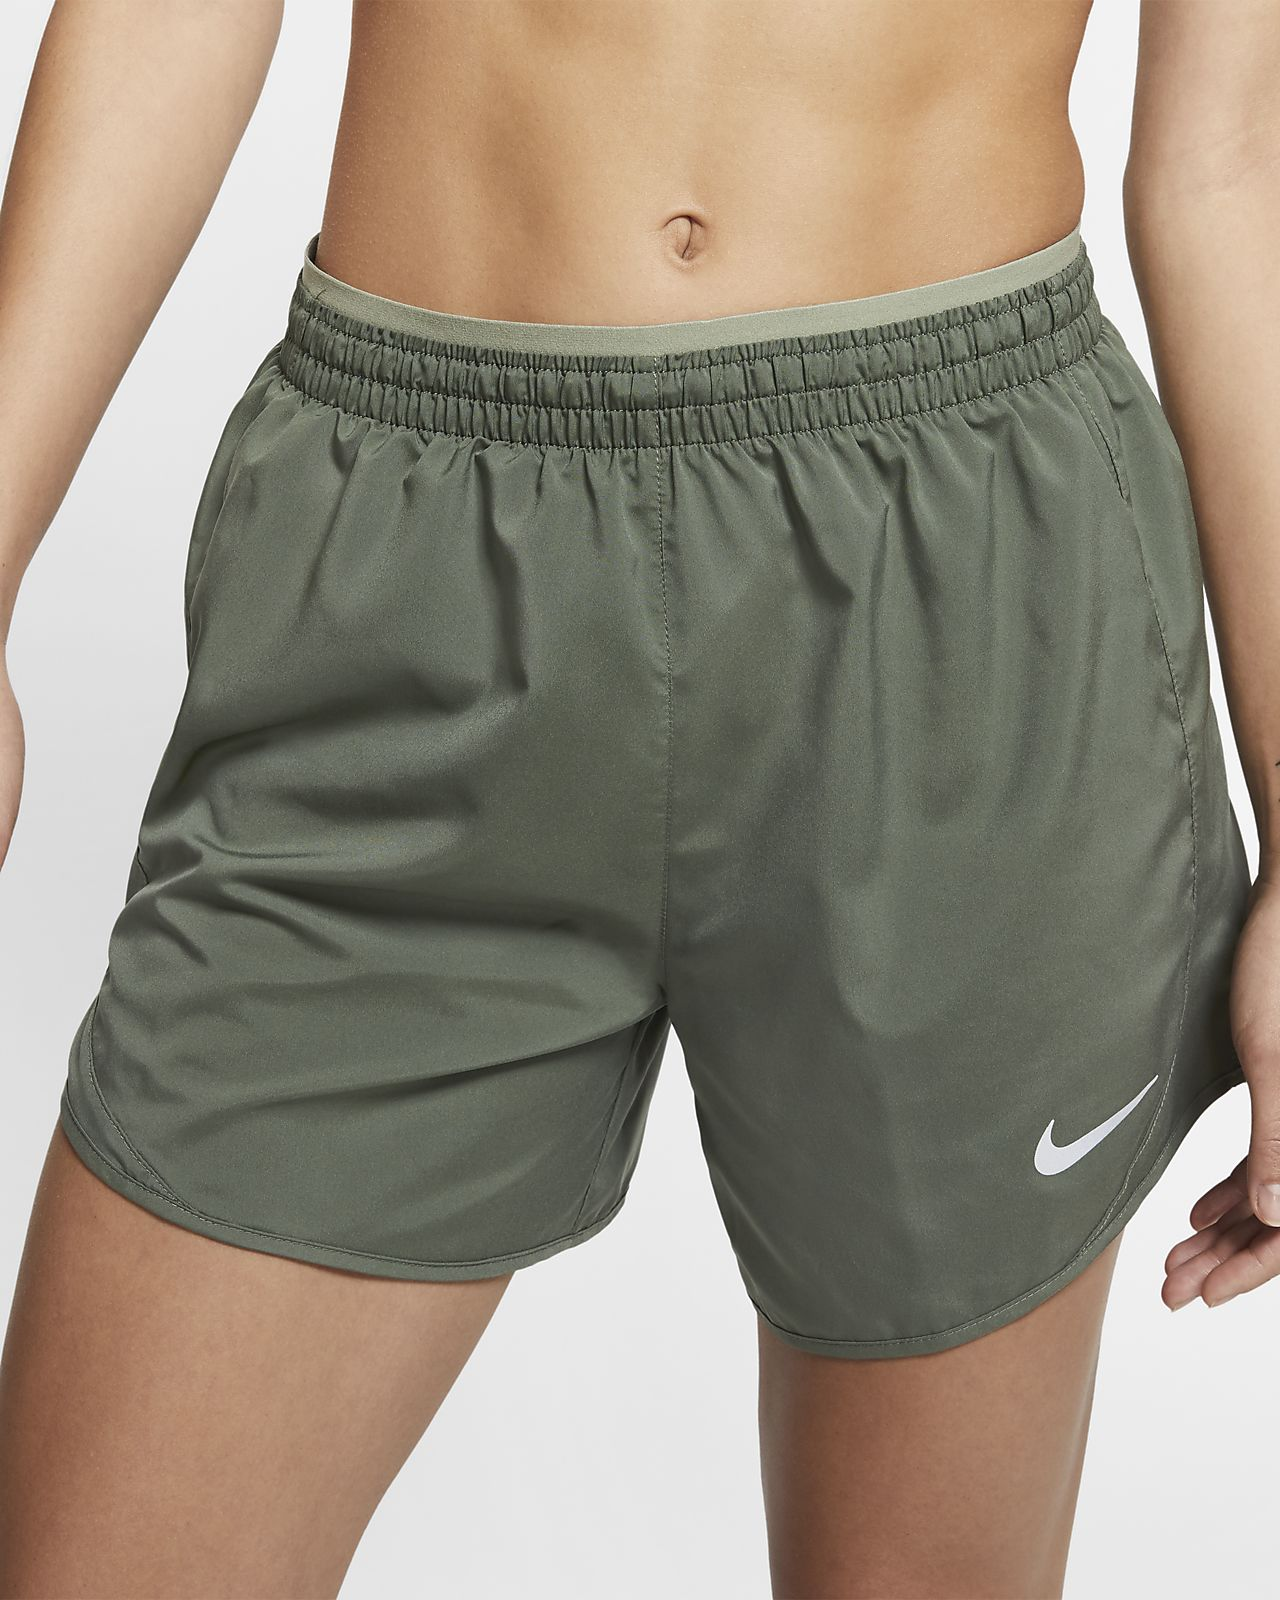 Shorts de running para mujer Nike Tempo Lux